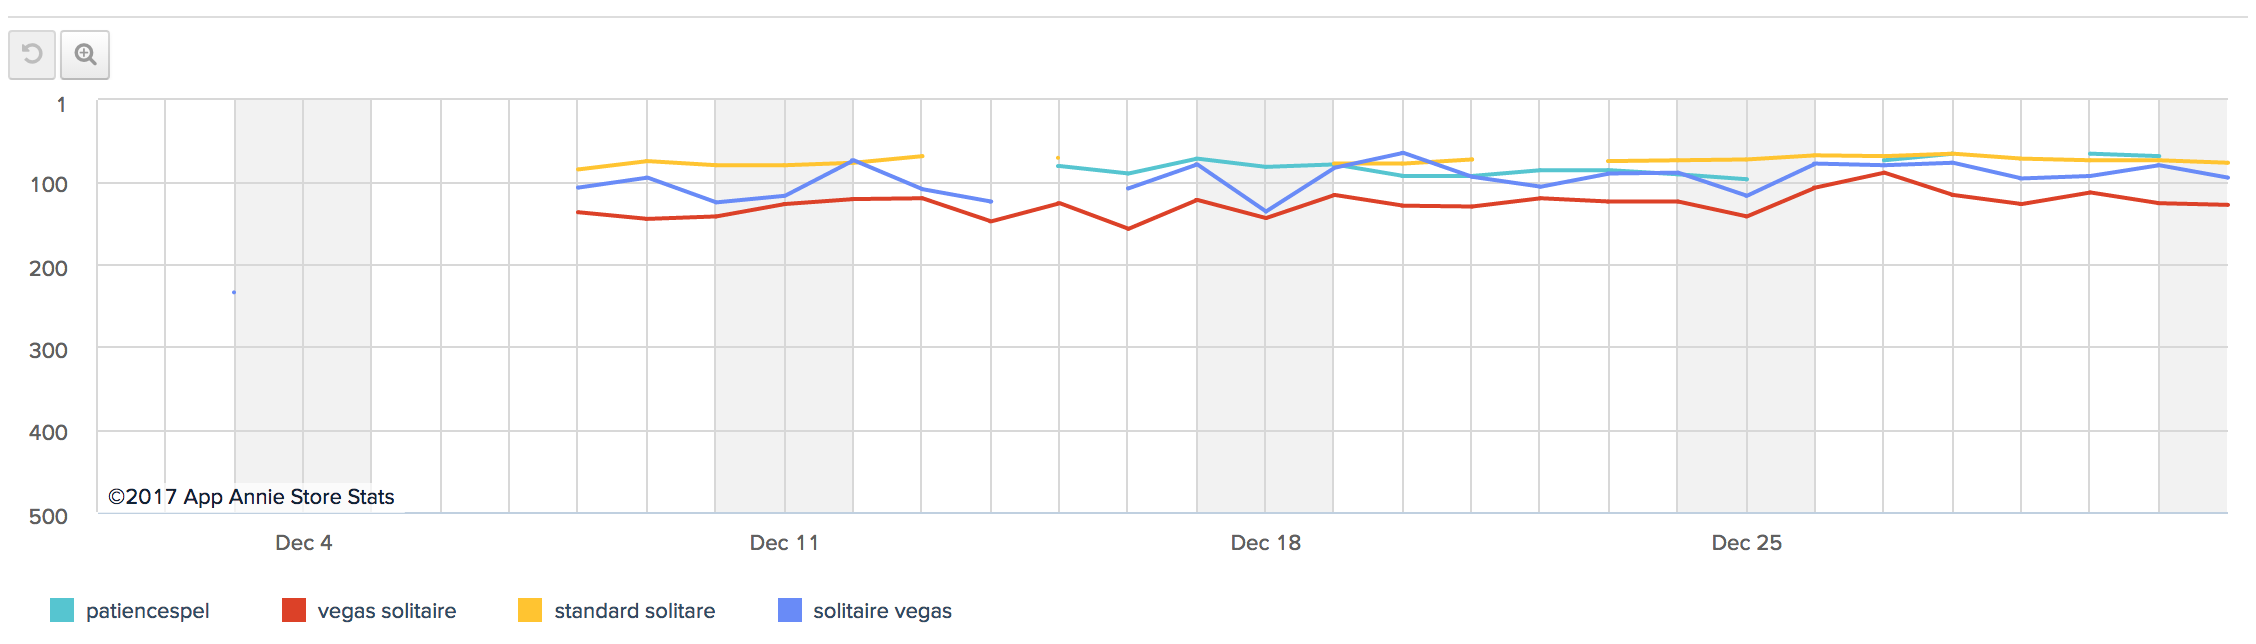 Solitaire Keyword ranking from AppAnnie